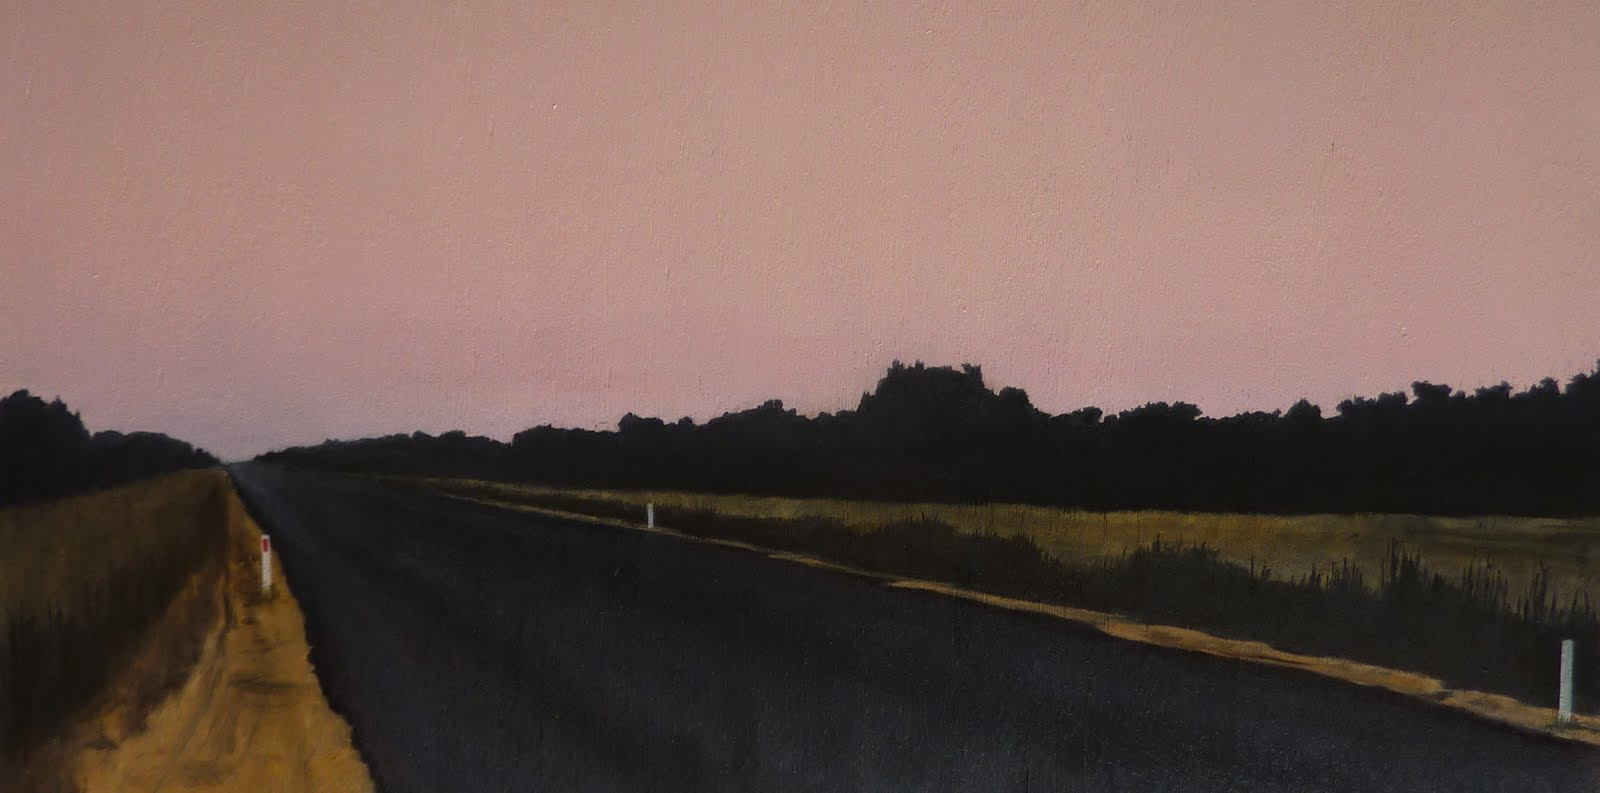 The Road at Dusk